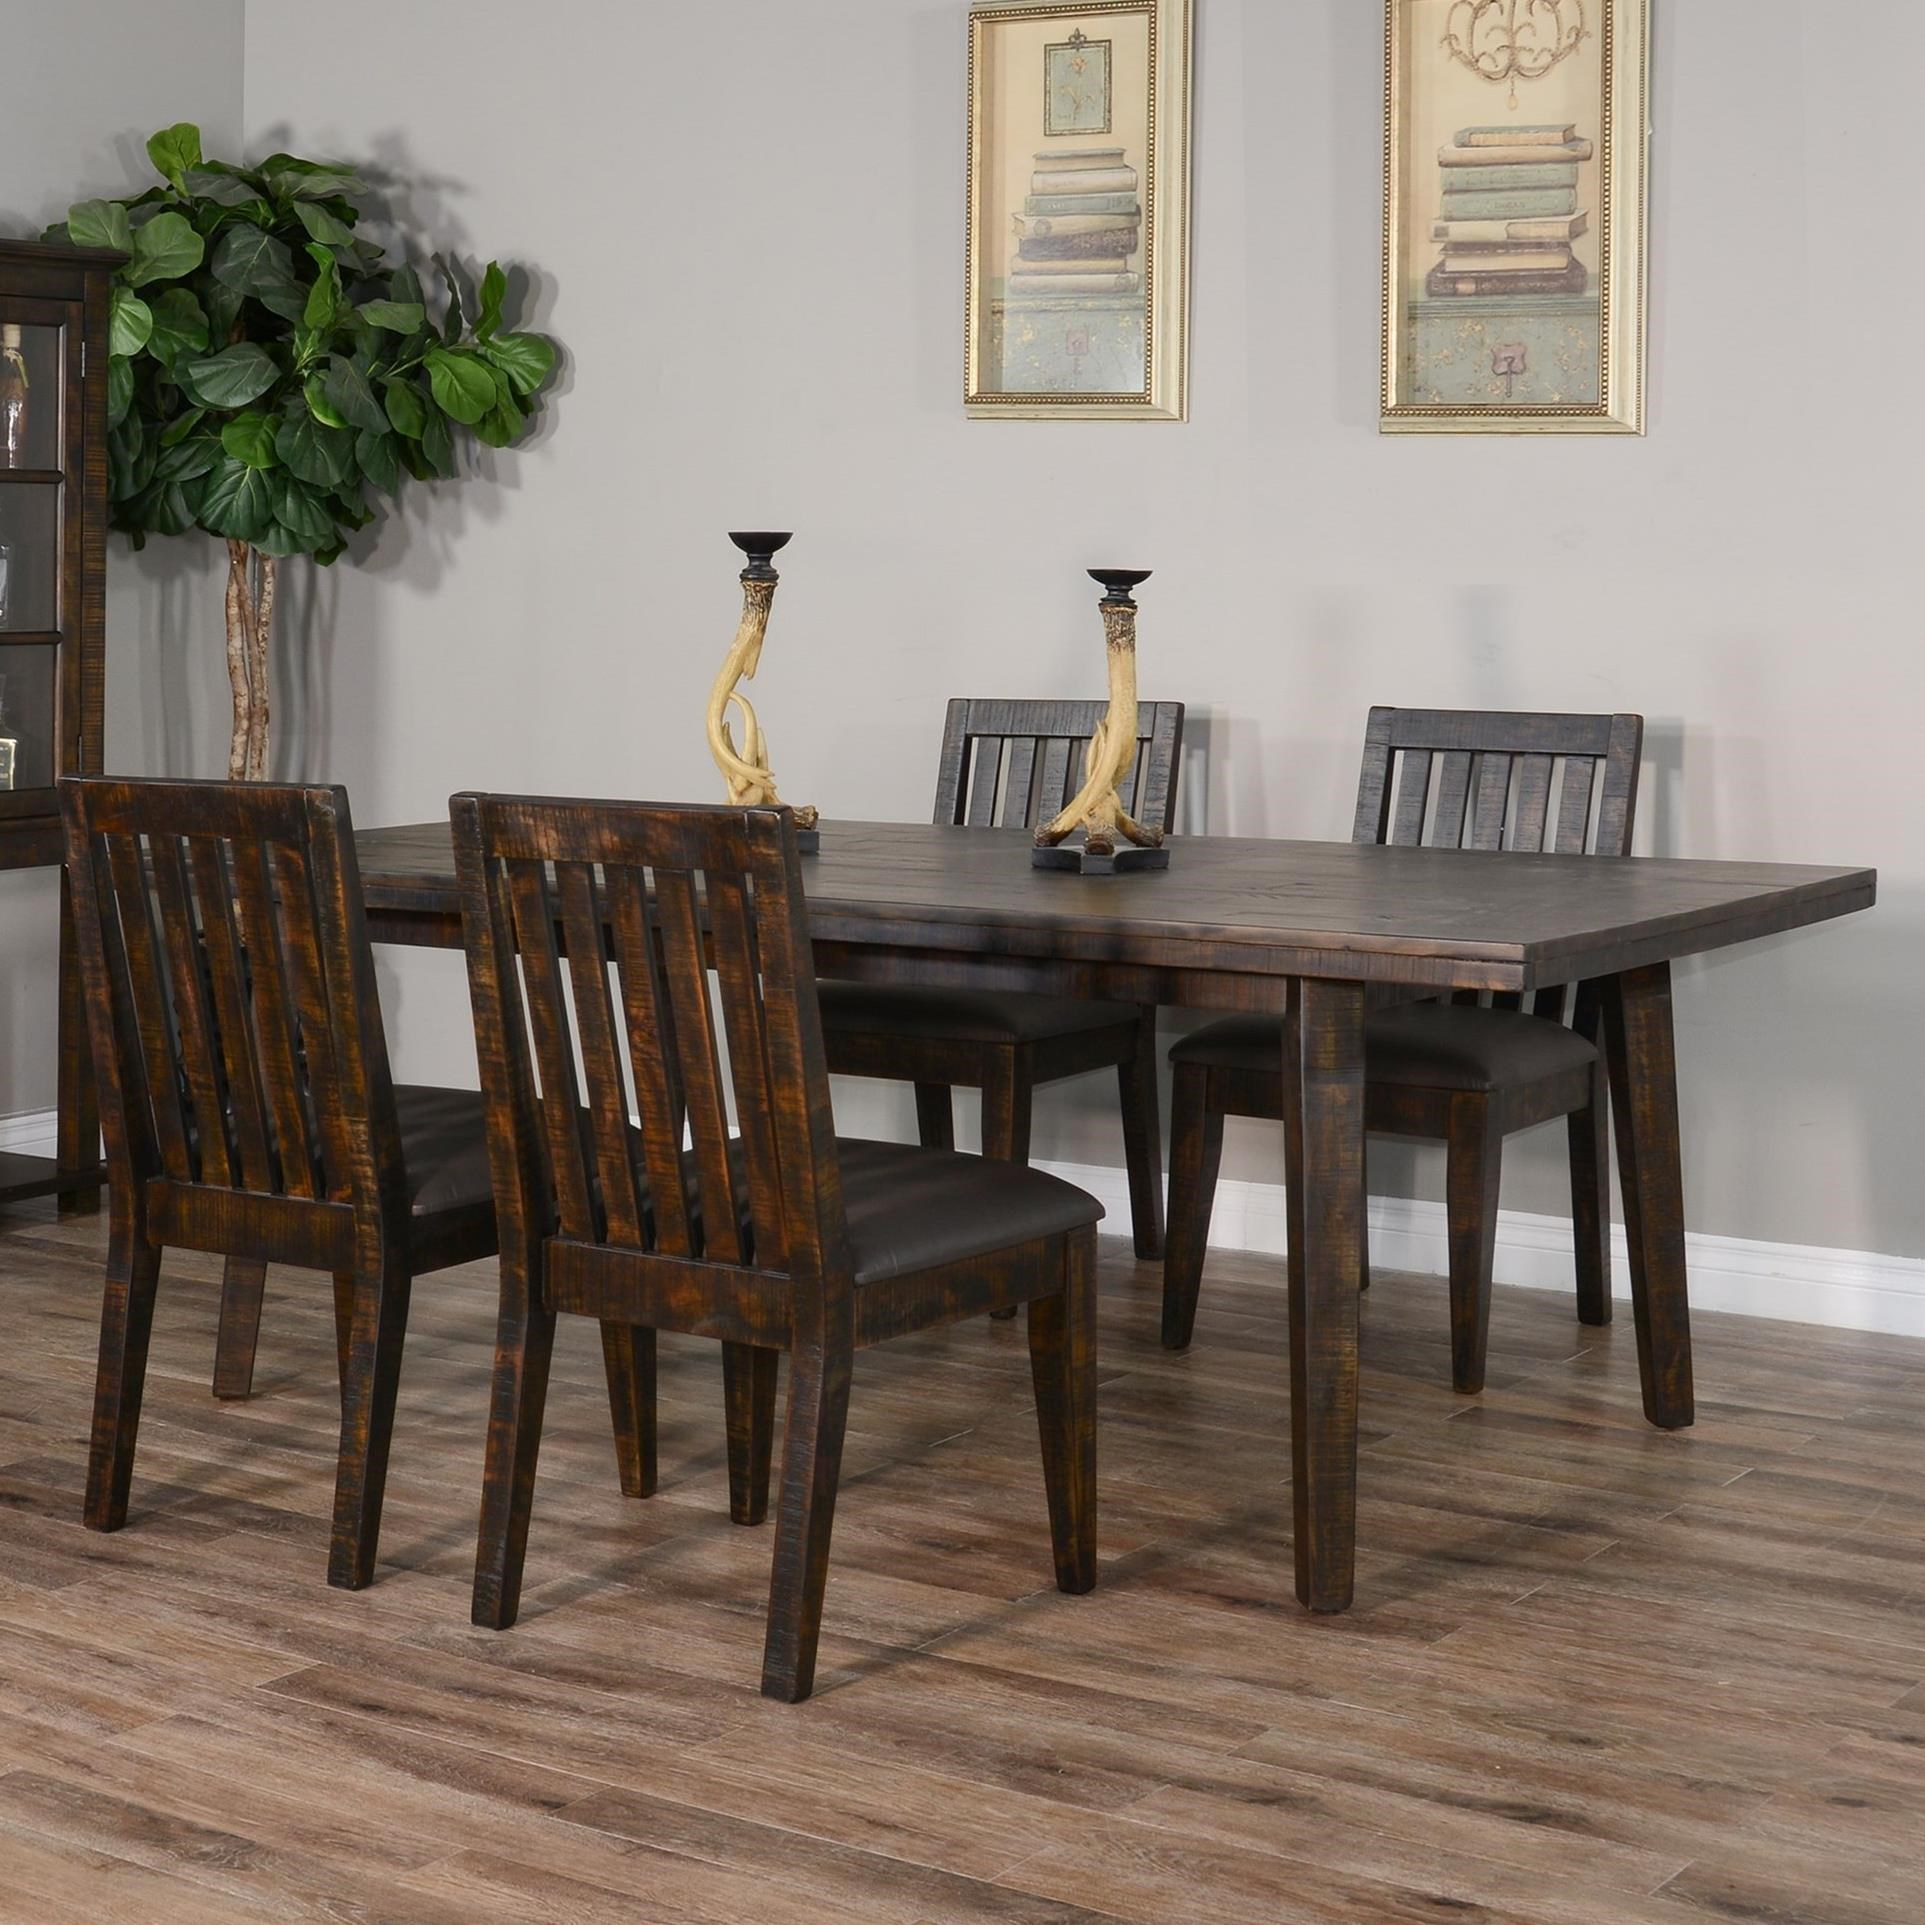 Nassau 5-Piece Table Set by Sunny Designs at Powell's Furniture and Mattress